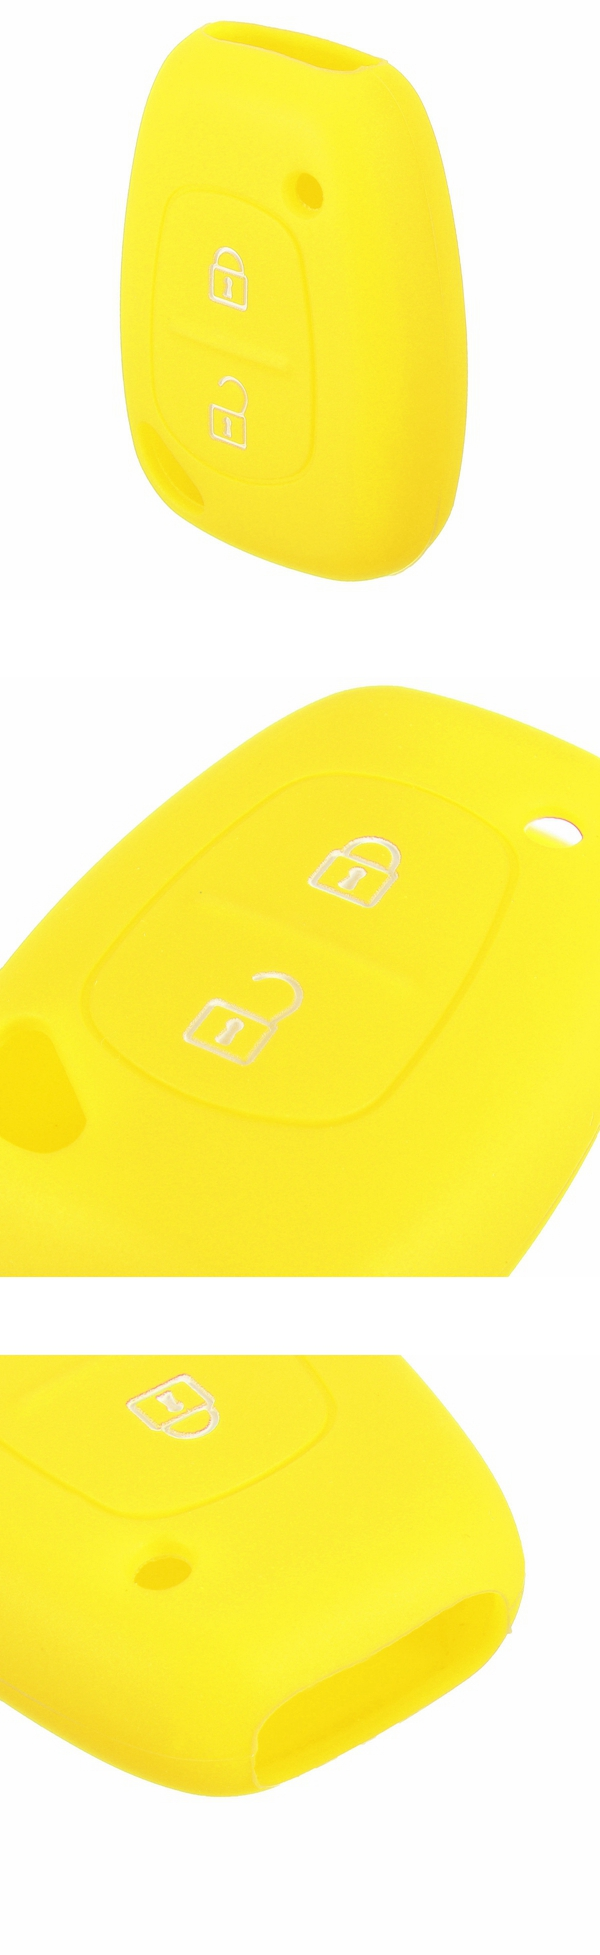 2 Button Soft Silicone Smart Key Fob Case Cover for Renault Kangoo Master Trafic